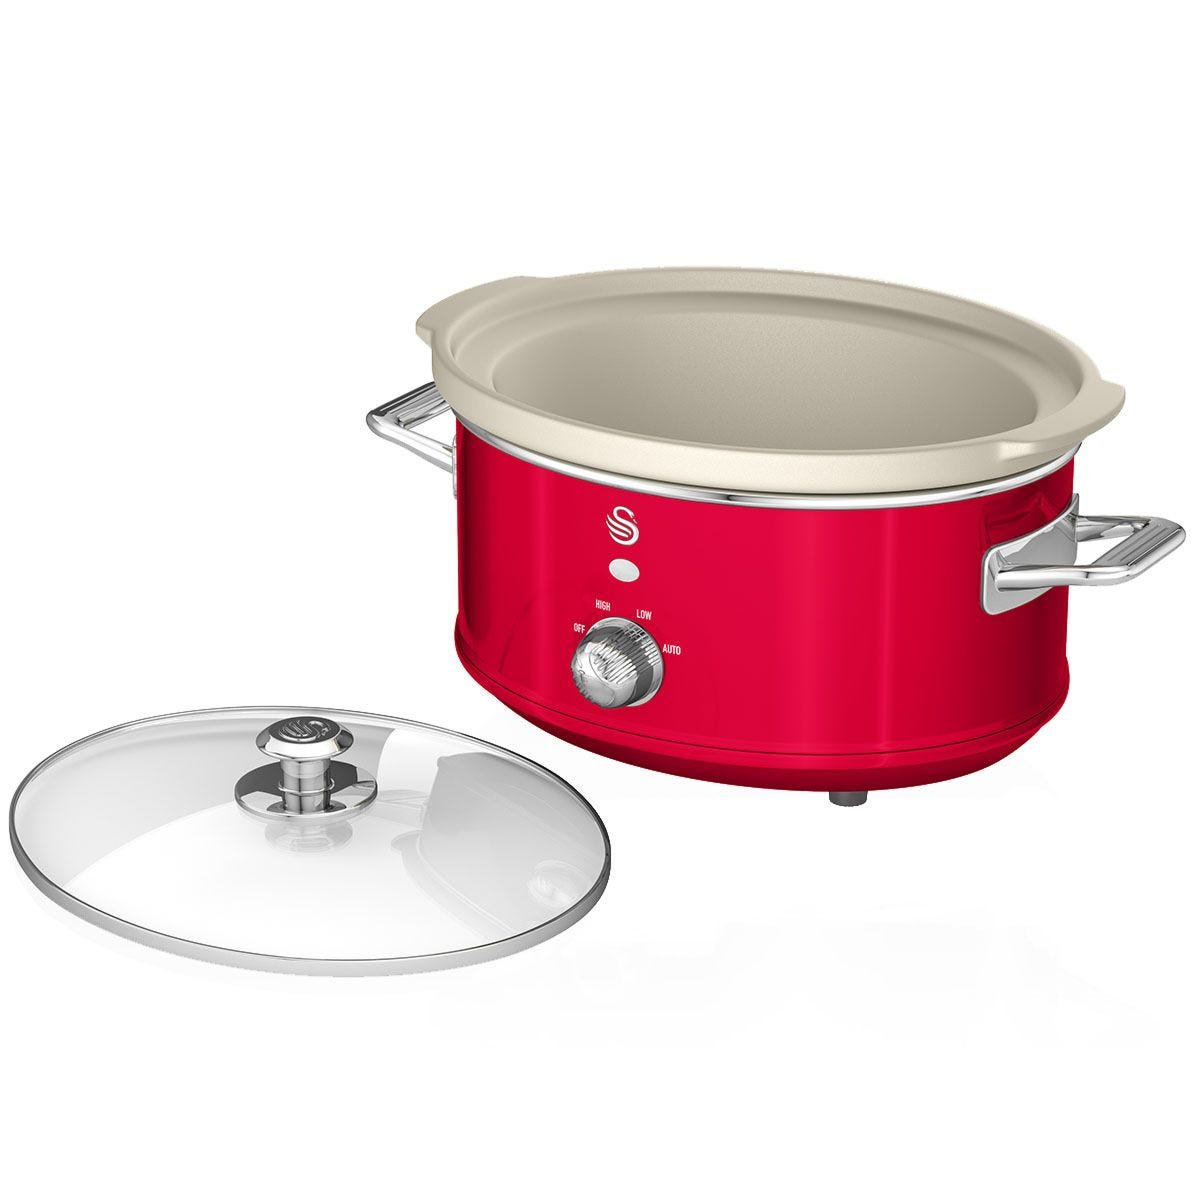 Swan SF17021RN 3.5L Retro Slow Cooker - Red